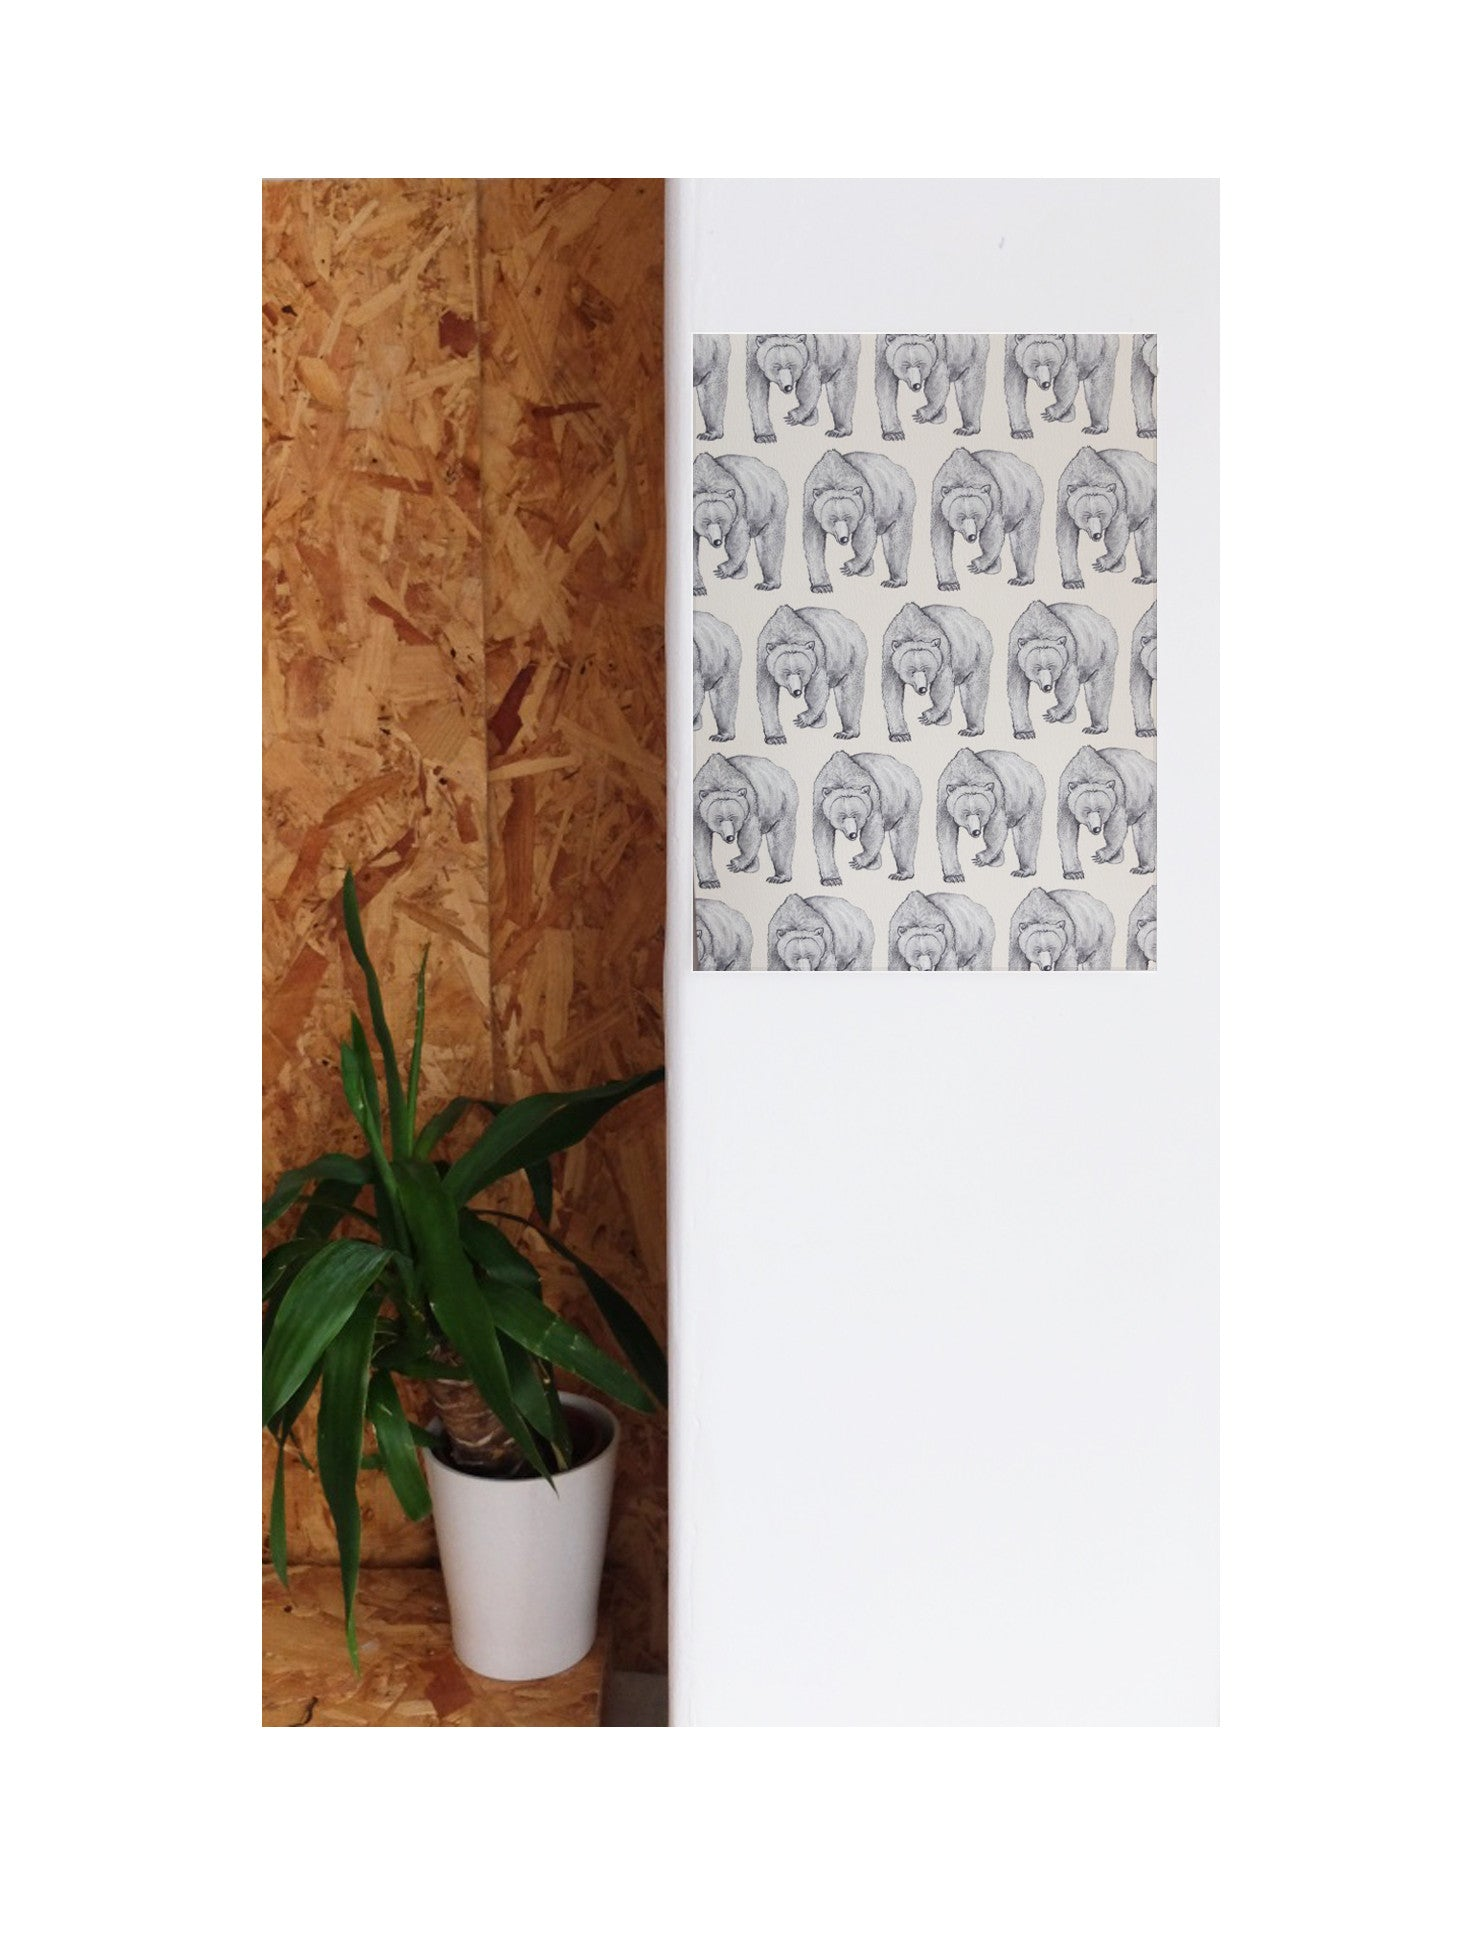 Bear | Illustrated Animal Wall Print - Merri | Illustration | Stationery + Gifts | Manchester